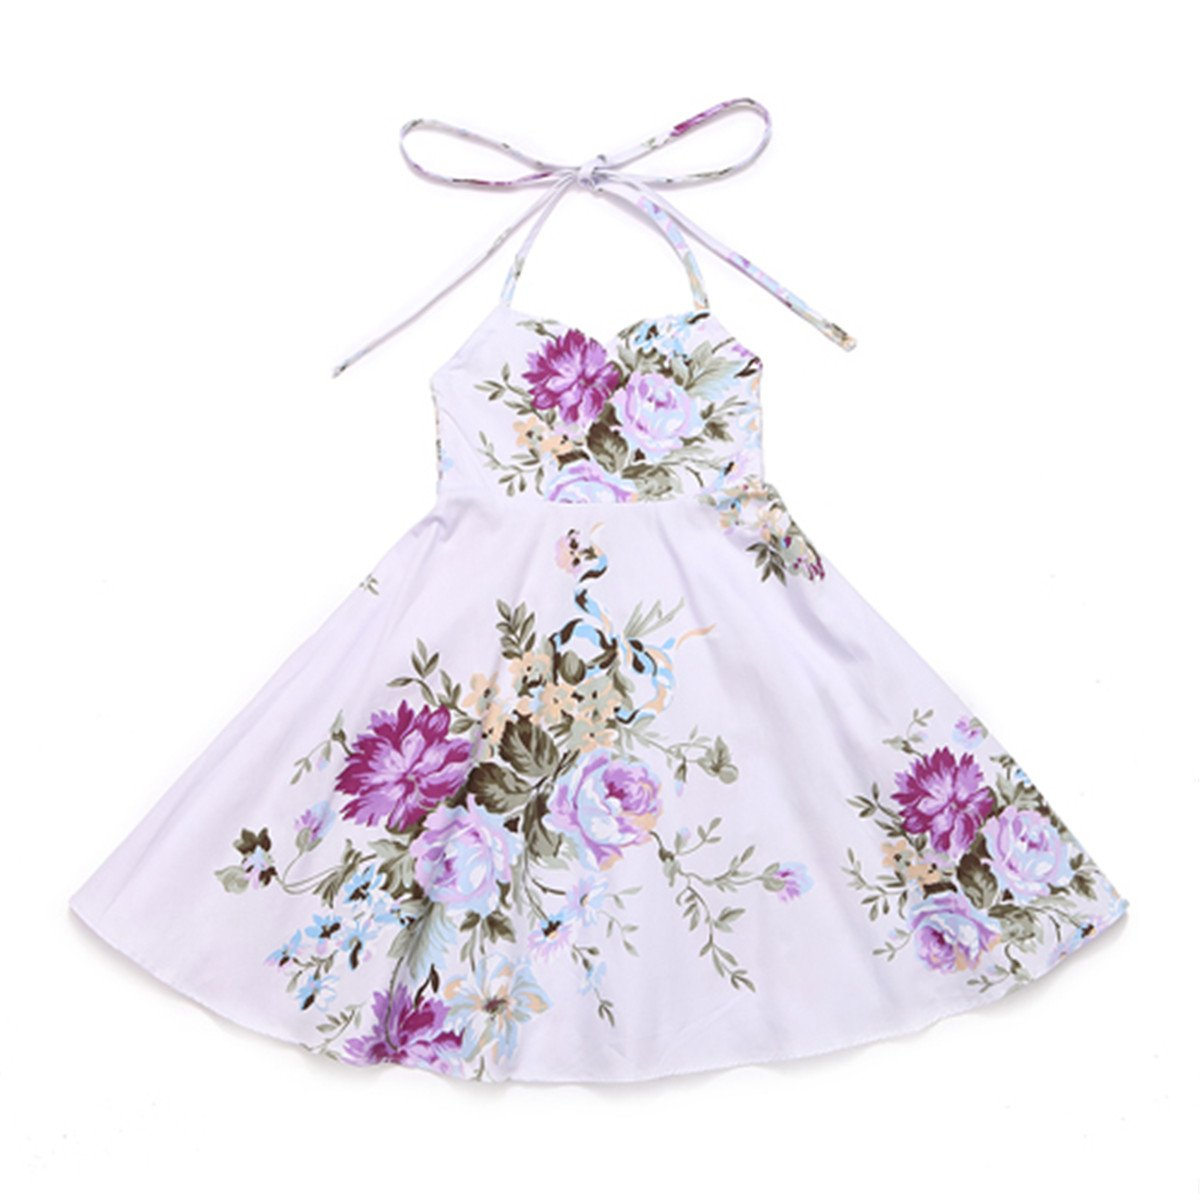 Amazon.com: Chiced Baby Girls Dress Brand Summer Beach Style Floral Print Party Backless Dresses for Girls Vintage Girl Clothing 1-9Yrs: Clothing